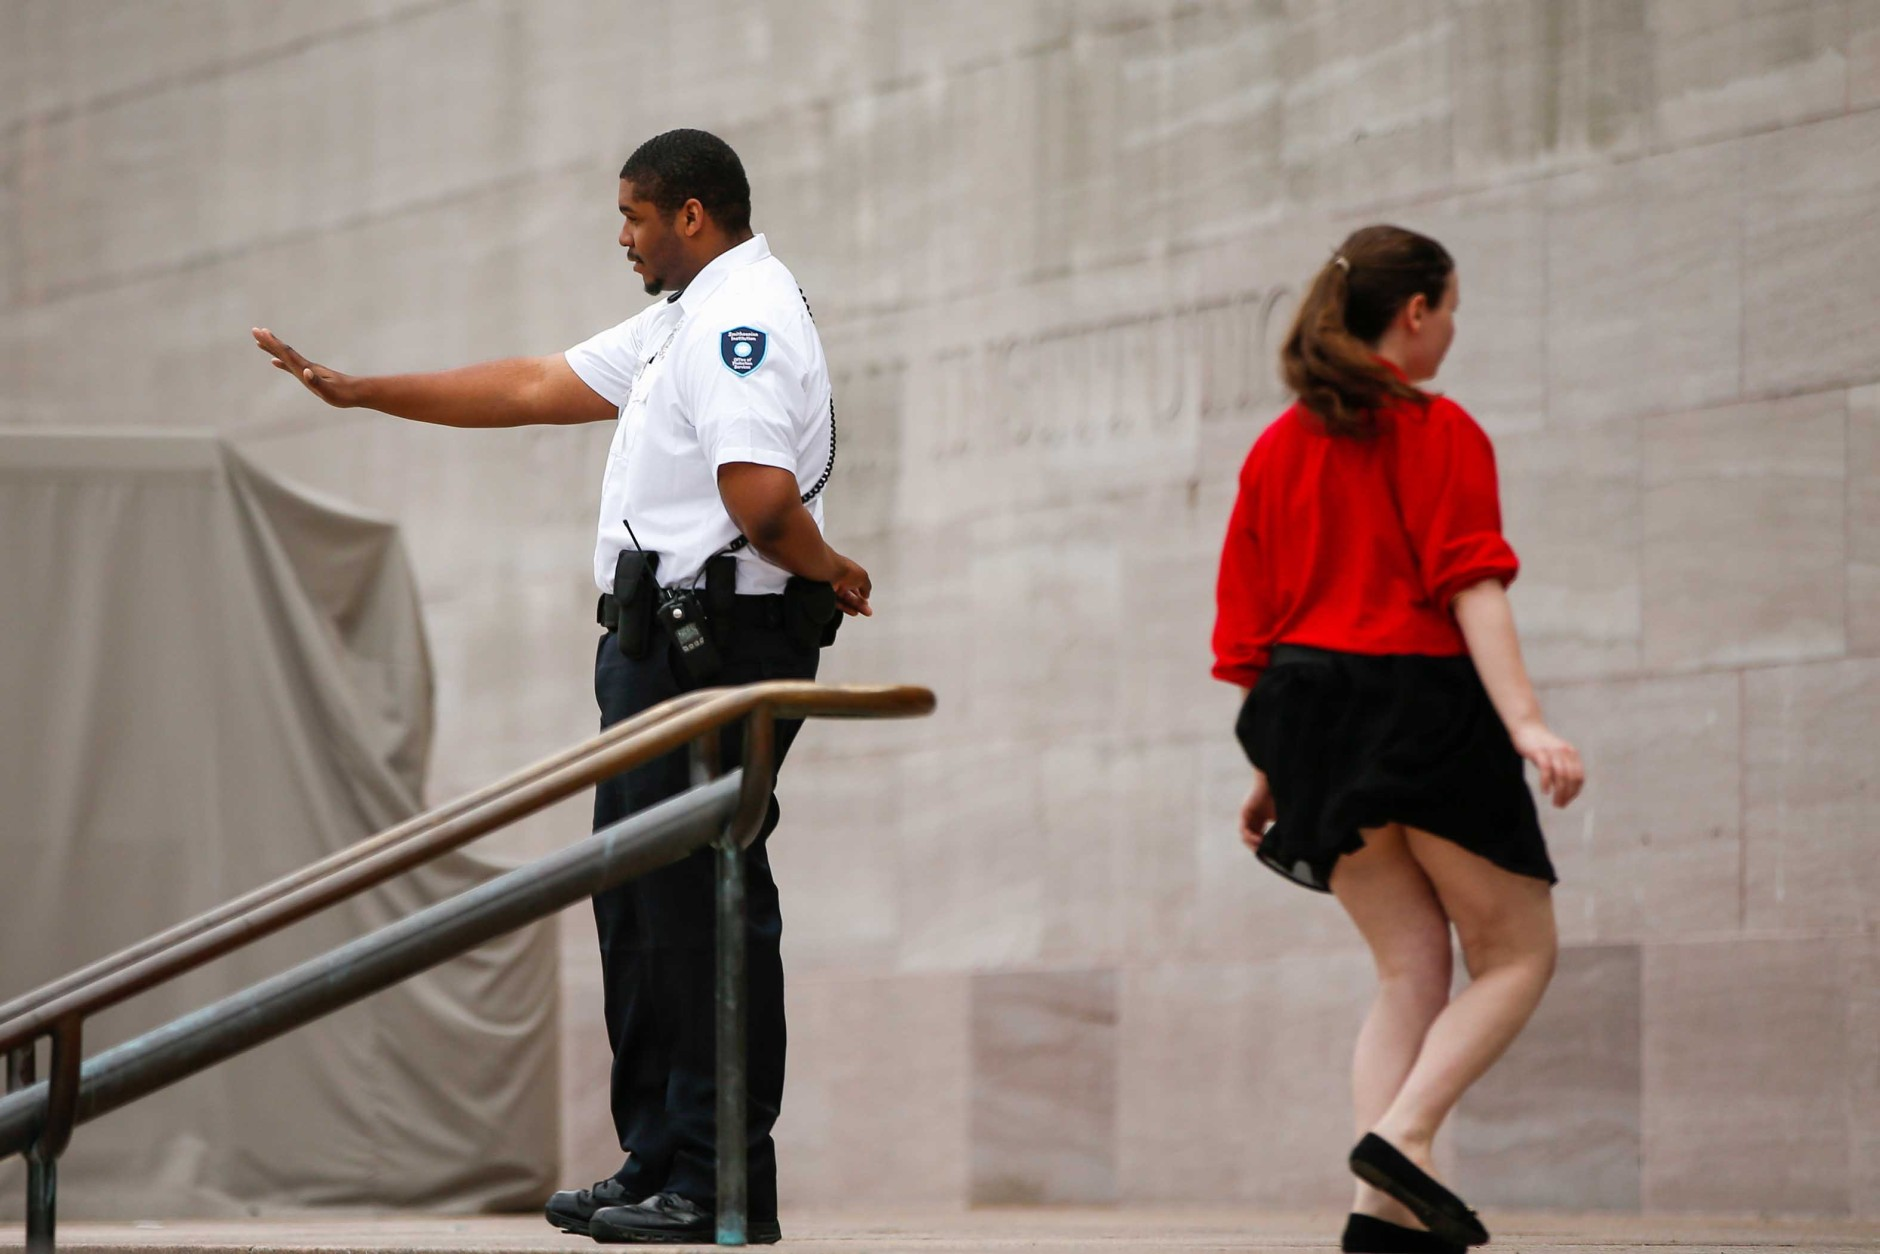 A security guard turns visitors away from the Smithsonian's National Air and Space Museum after widespread power outages caused many of the buildings along the National Mall in Washington to shut down temporarily, Tuesday, April 7, 2015. Widespread power outages affected the White House, State Department, Capitol and other sites across Washington and its suburbs Tuesday afternoon — all because of an explosion at a power plant in southern Maryland, an official said.  (AP Photo/Andrew Harnik)